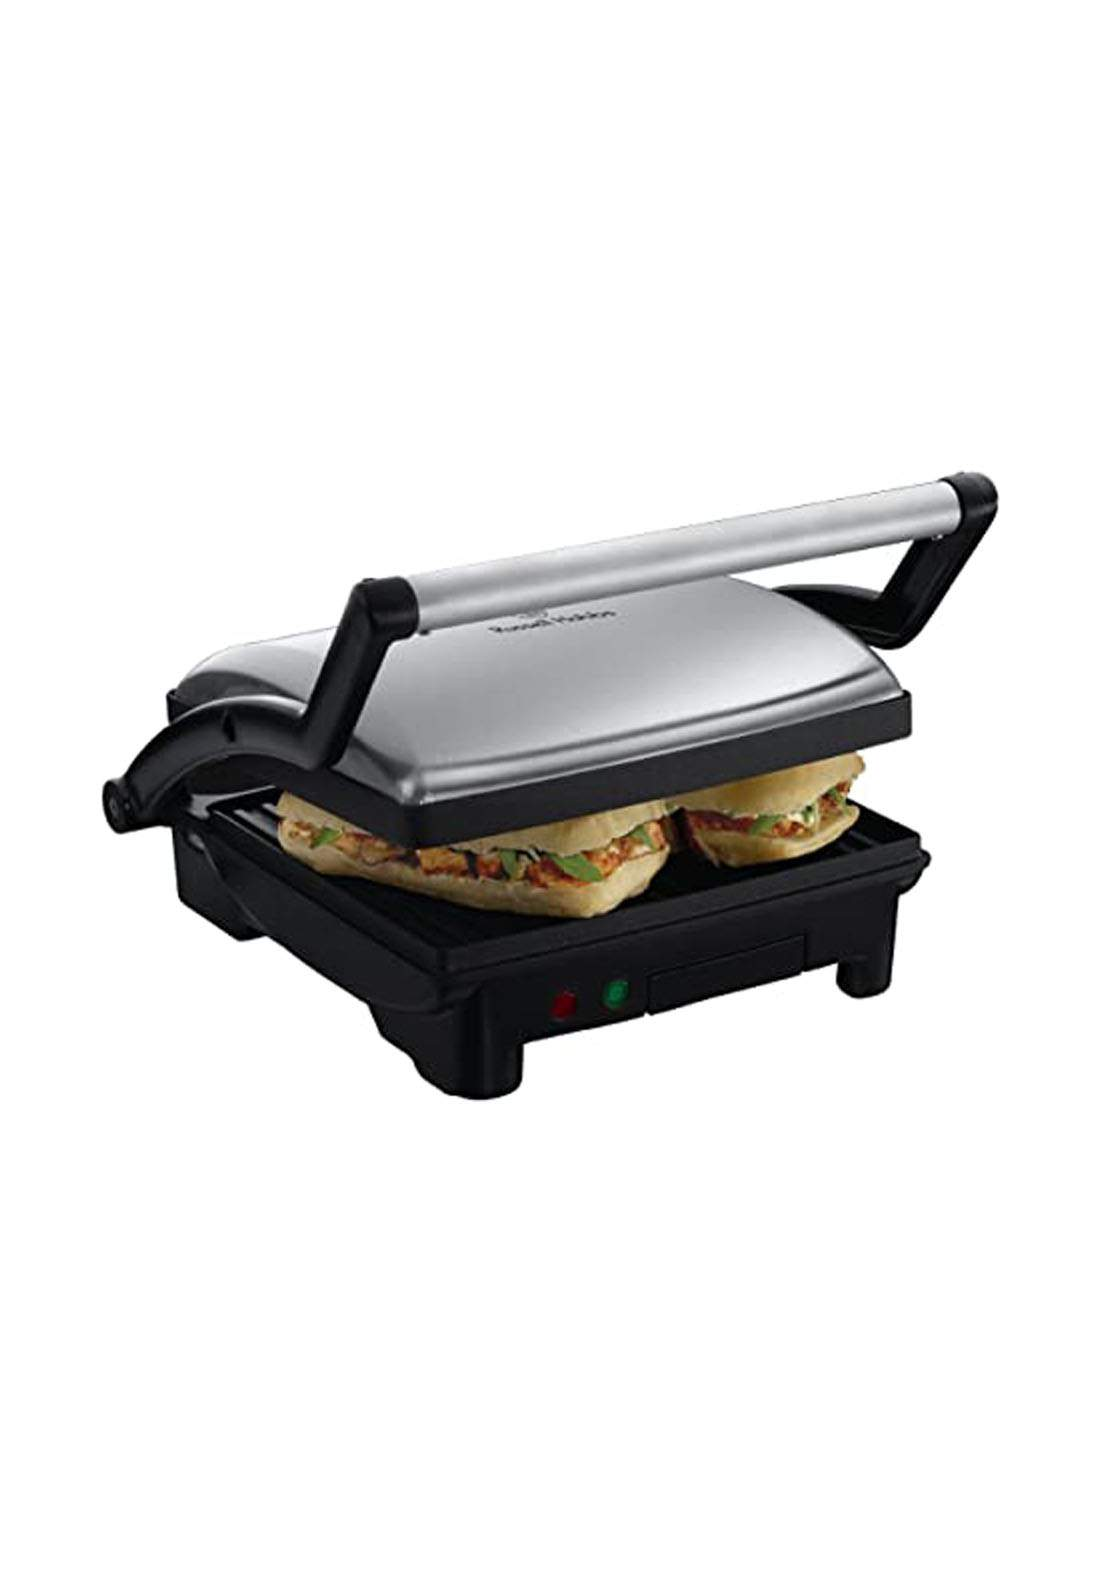 Russell hobbs 17888 electric grill كابسة صاج